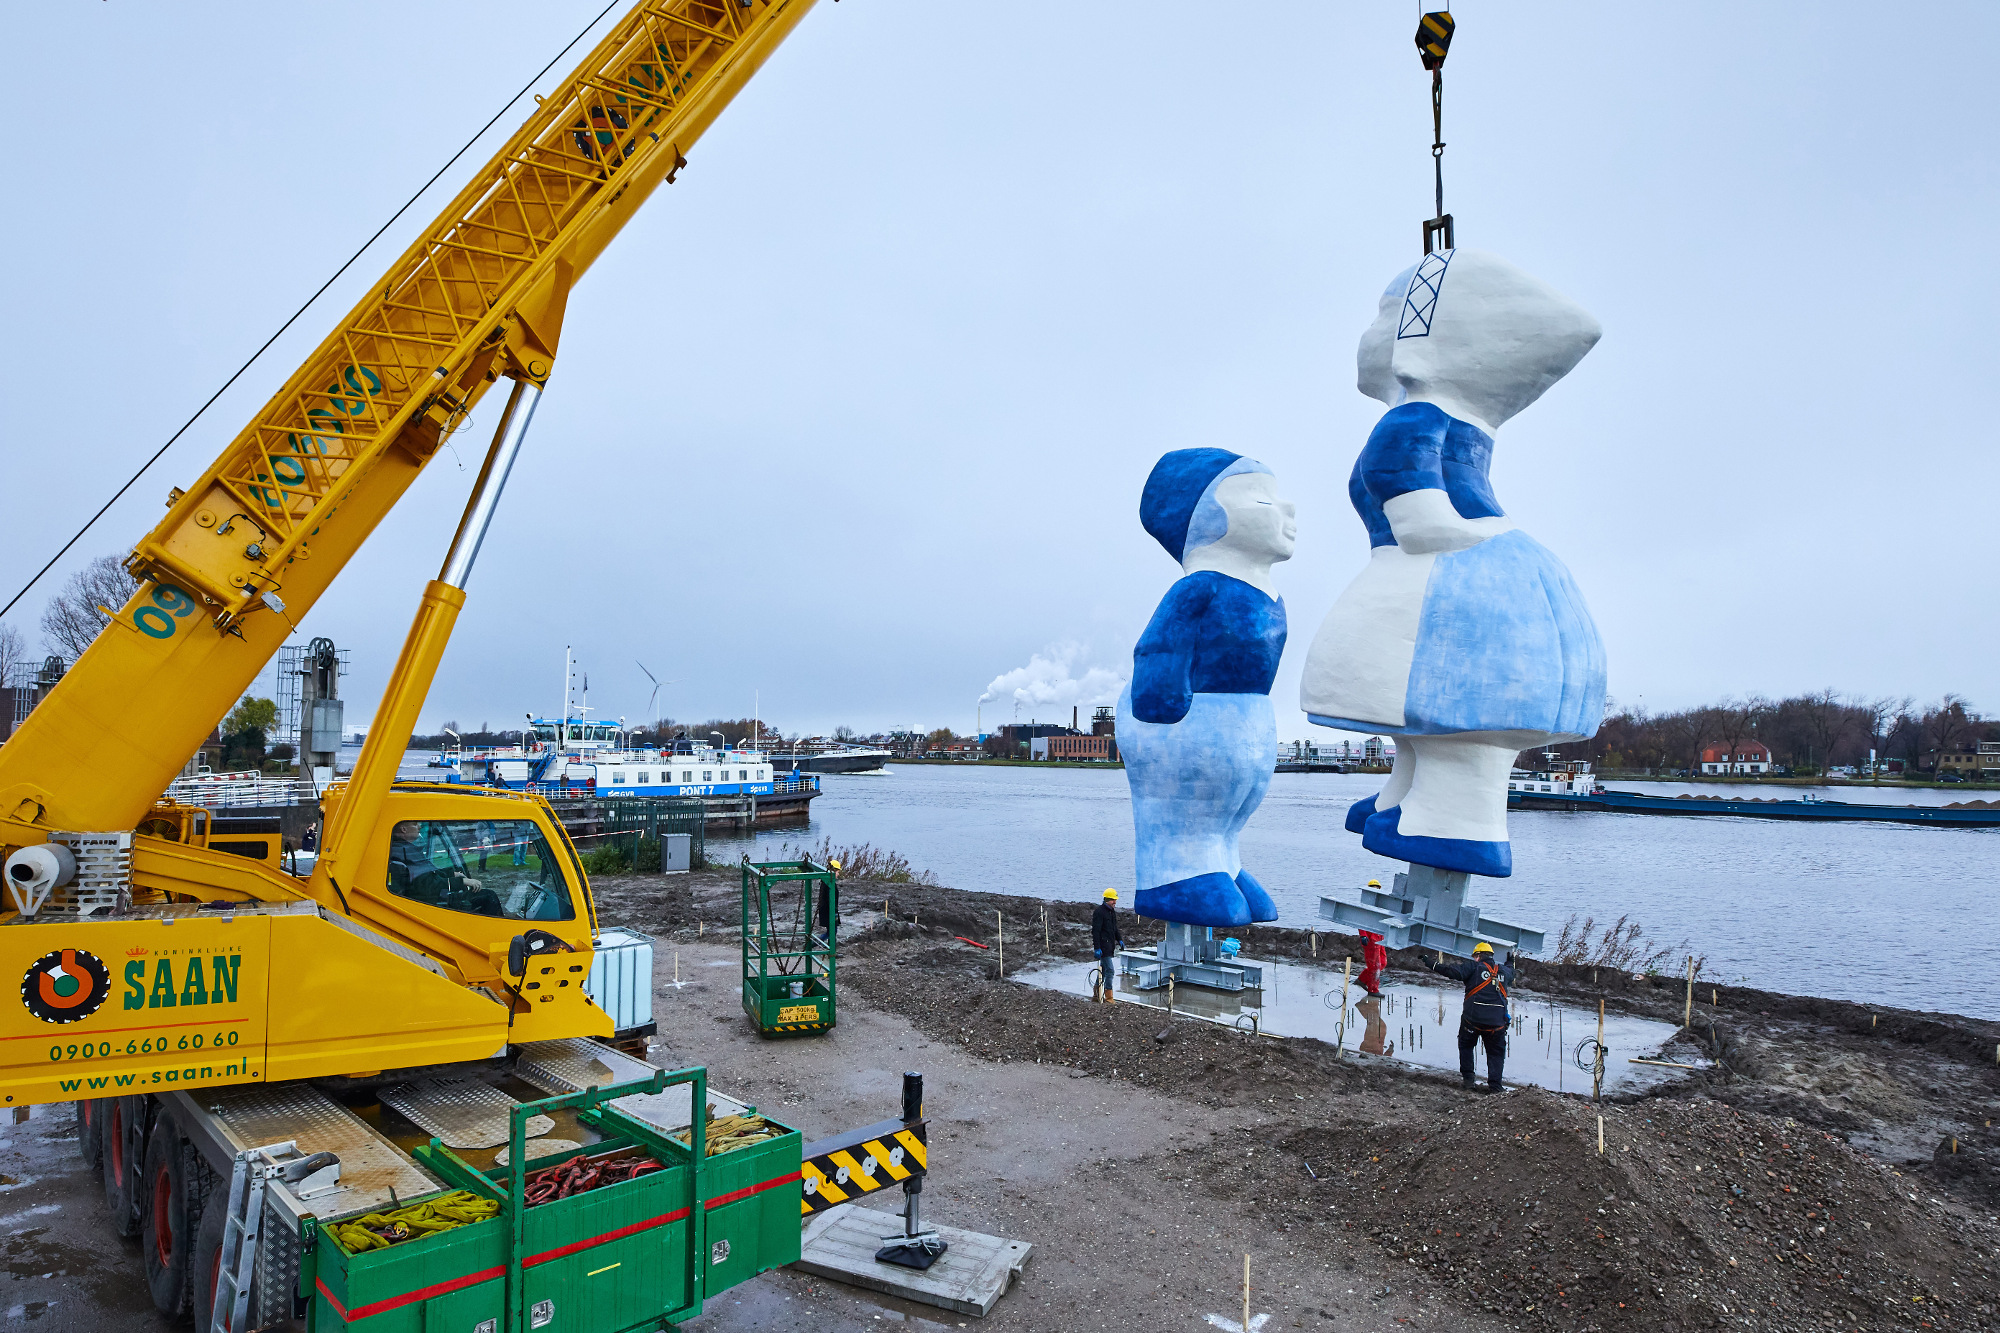 The sculpture is lowered into place by crane